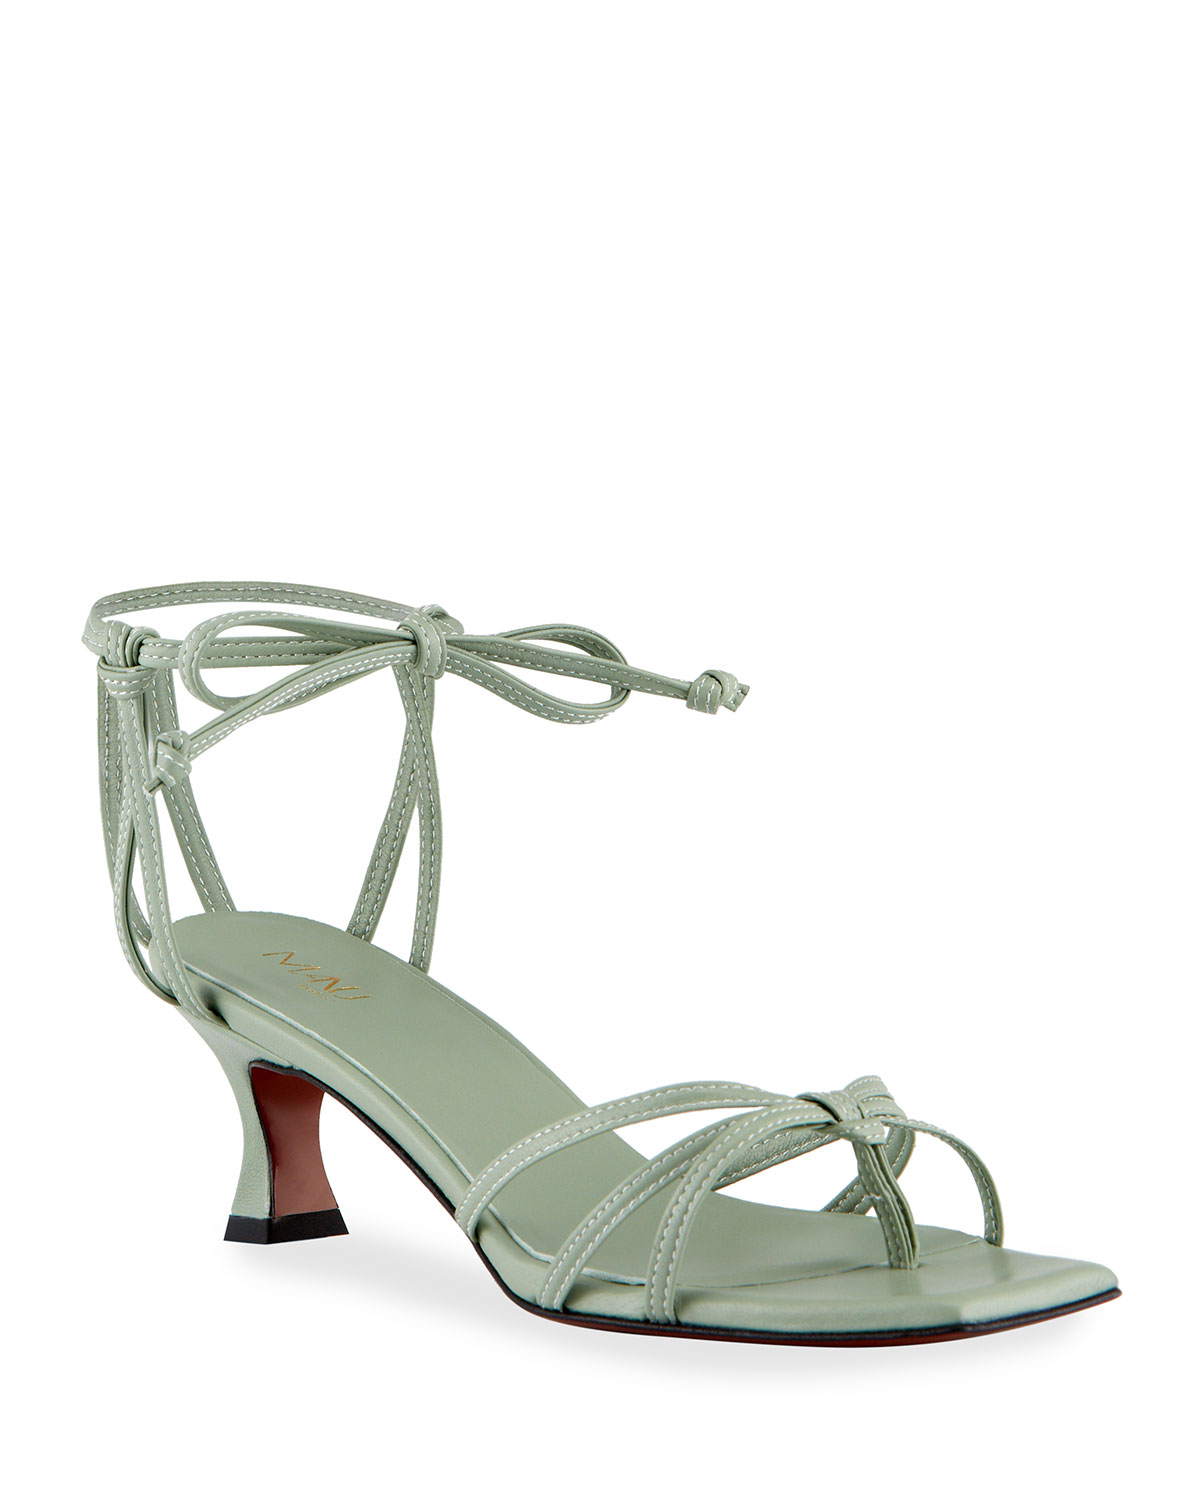 50mm Napa Strappy Ankle-Tie Sandals